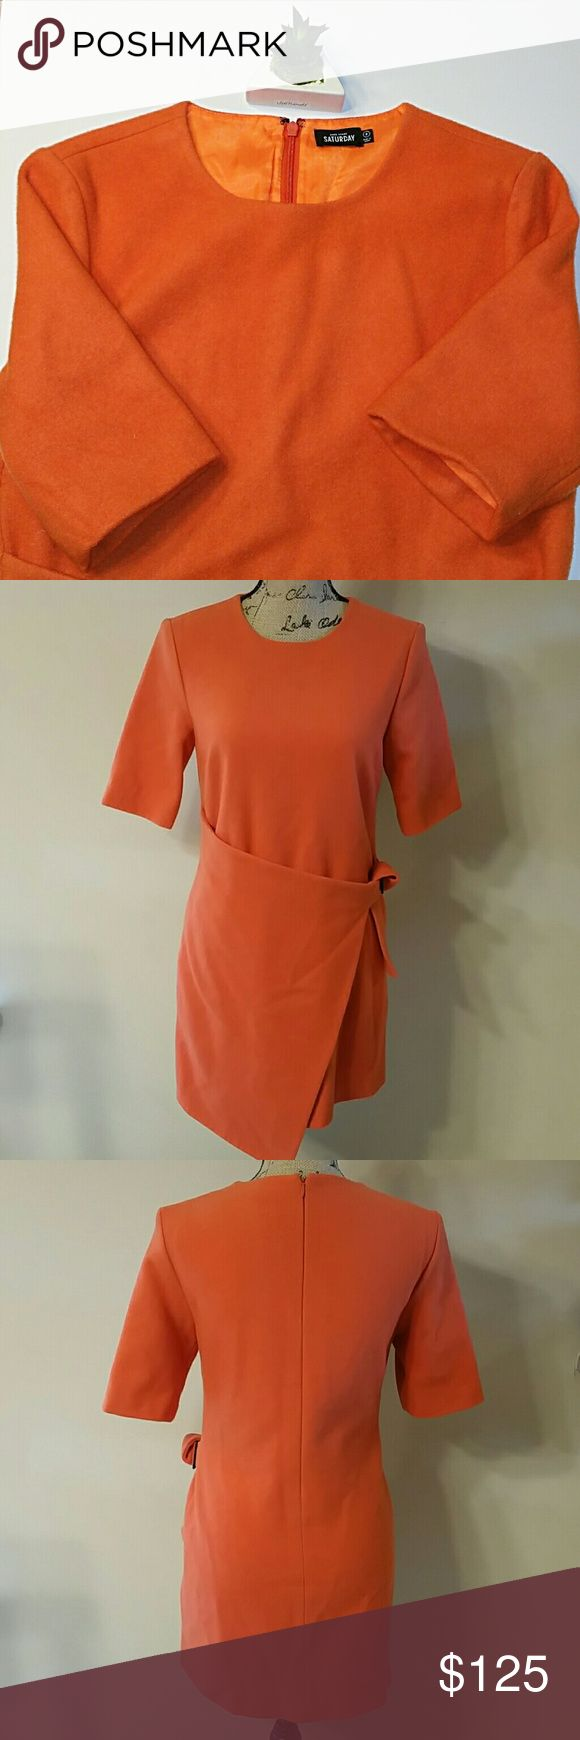 """{Kate Spade Saturday} Orange Wool Belted Dress Gorgeous wool dress by Kate Spade Saturdat. In great used condition. Small areas that are missing some wool, but barely noticeable (see picture 7) Measurements: Length: 33"""", Bust: 17"""", Waist: 16"""". Professional Dry Cleaning Recommend. Kate Spade Saturday Dresses Asymmetrical"""